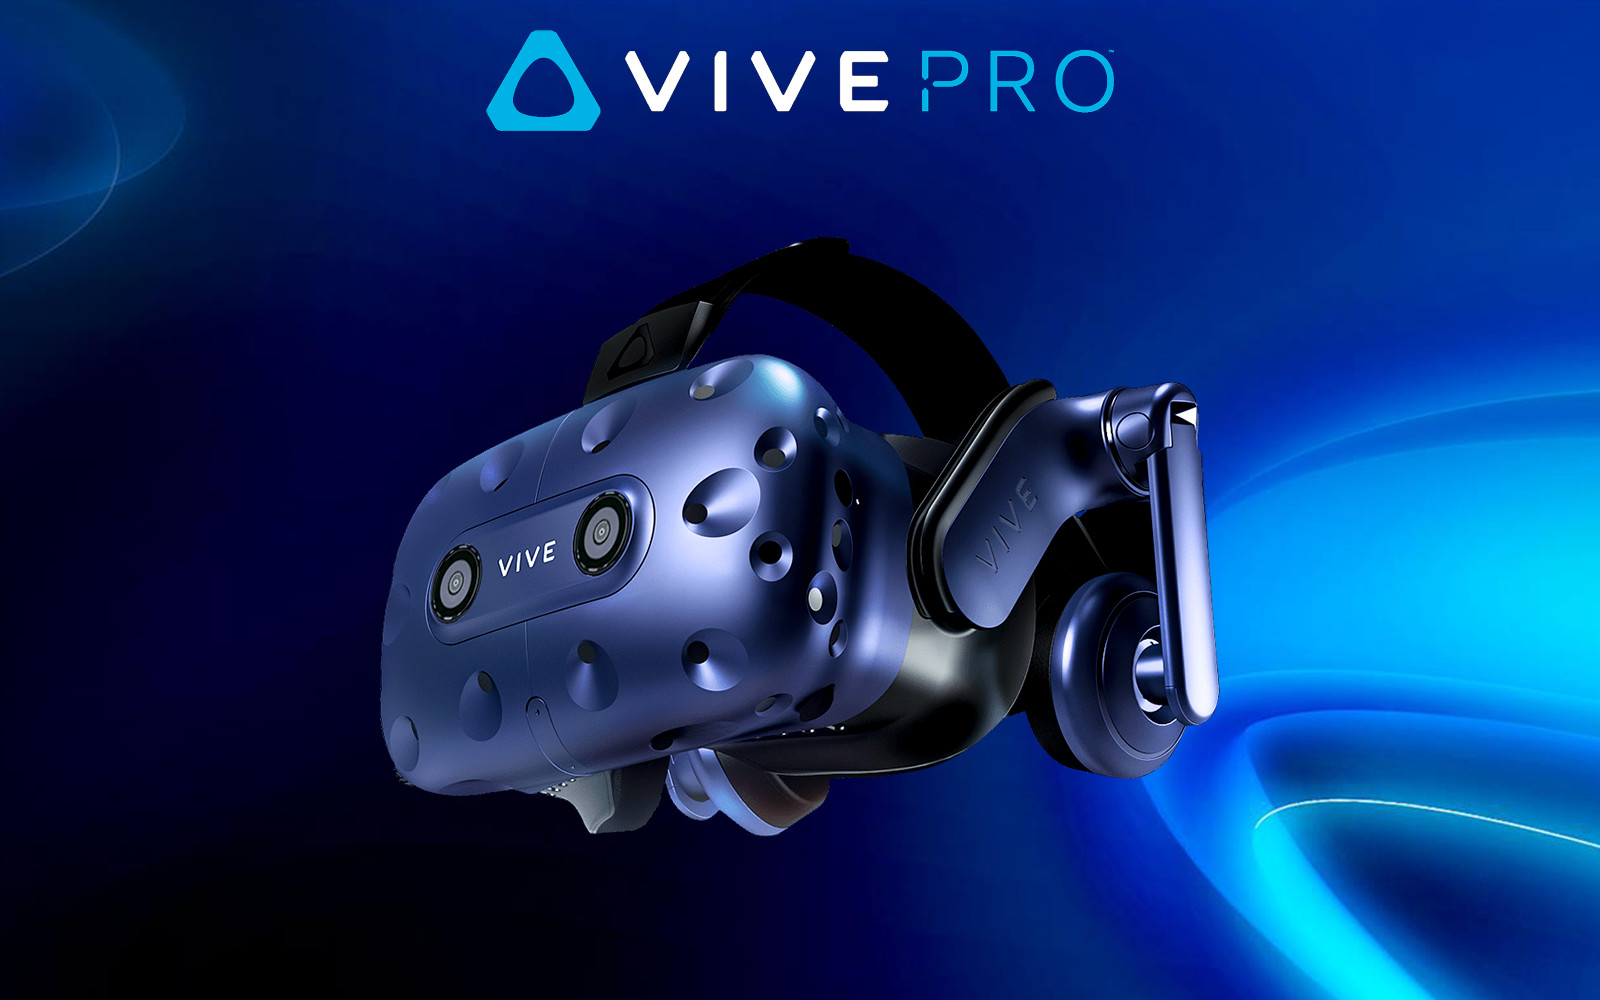 HTC Vive Pro Bundle Is Now Available For A Whopping $1400 On Amazon